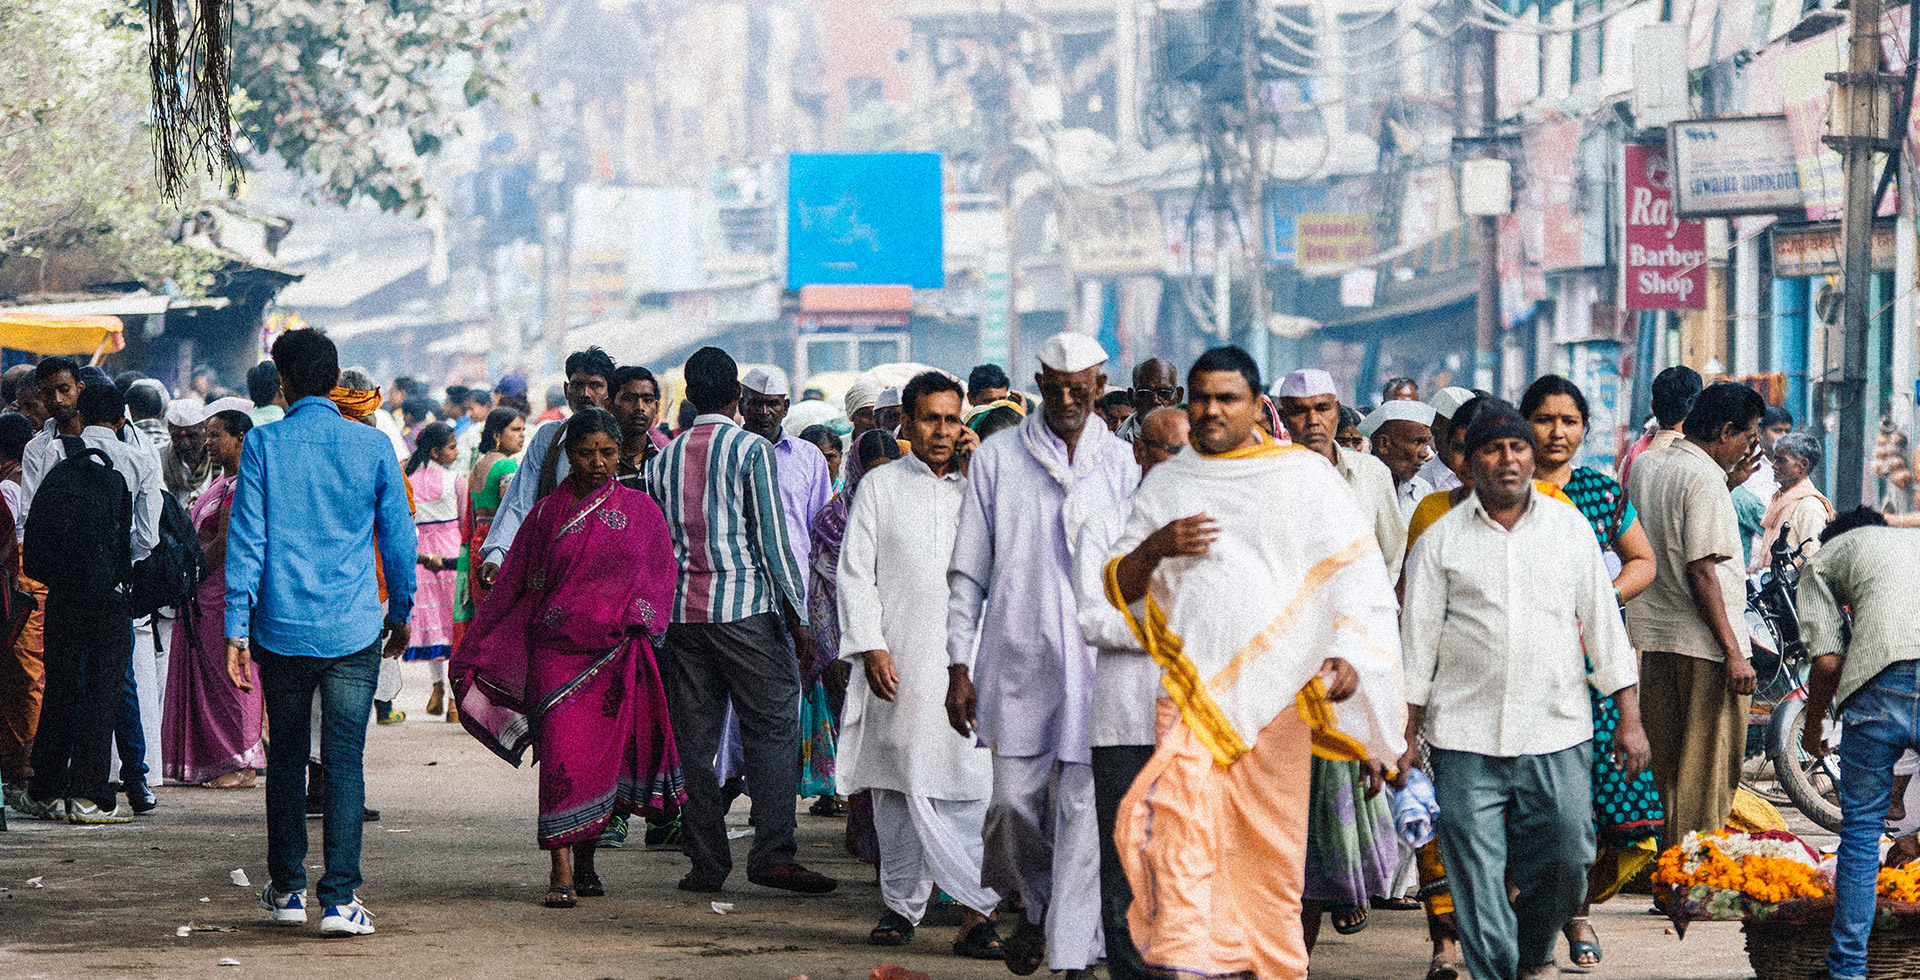 A crowd walks on a street in Varanasi, India